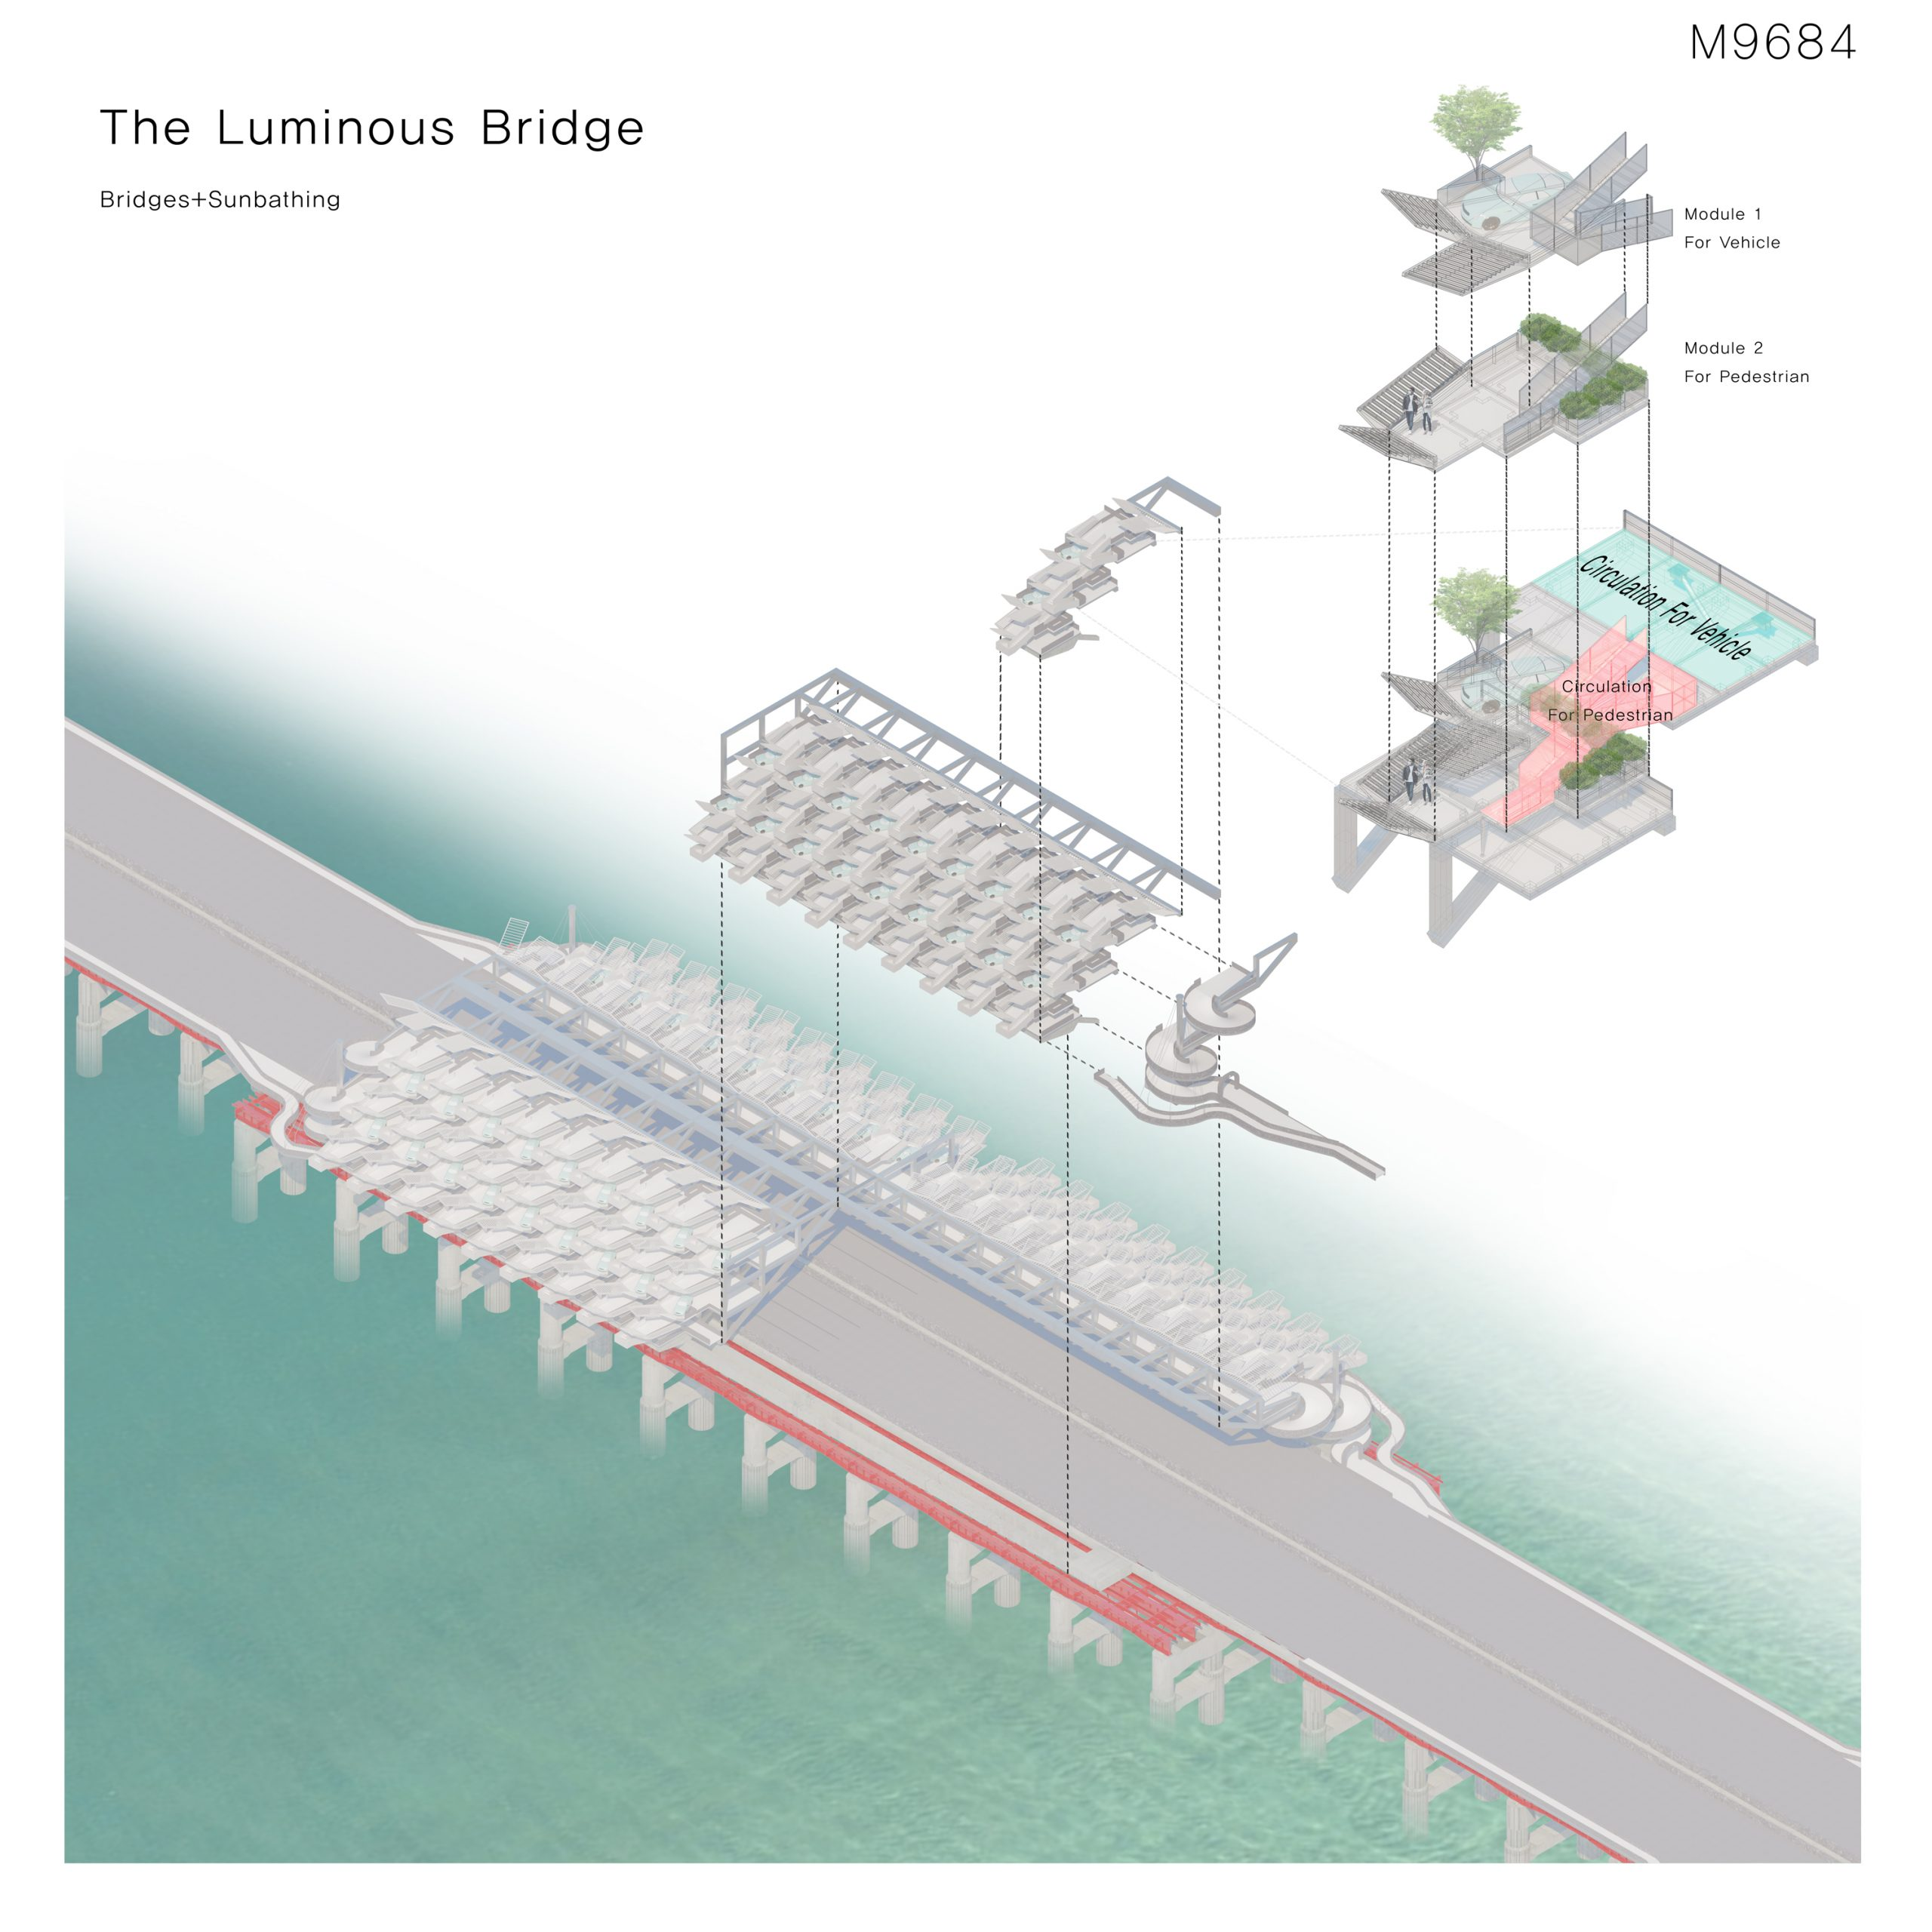 The bridge is floating with substantial and strong structures without any shielded elements around the bridge, it is a place where you can enjoy urban skylines and open spaces in dense urban cities. In other words, it is a new linear observation platform rather than just urban infrastructure. [Sunbathing with Social Distancing] There isn't enough space for sunbathing in the current situation where refrains from outside activities. You have no choice but to look at the sun-light in a room with windows. It's like appreciating a picture on a frame. That is, cities now need an outside space that is always available to everyone and safe from infection. [Luminous Bridge] I designed a new platform on the overpass of the car. It consists of two basic modules. First, you can enjoy sunbathing after parking your car. Except for the space occupied by the vehicle, sufficient external space is provided. The second module is a space where pedestrians can stay, where family members can relax and enjoy sunbathing. The two modules were stacked alternately in stair-wise. This layout allows the same sunlight to enter all spaces, and it is possible to keep social distancing between spaces. The modules have seedlings and plants. They provide users with a psychological sense of stability and create a pleasant environment by inducing natural soundproofing and air purification. Each module accommodates different types of movement system: driving and walking. Therefore, vehicle circulation was placed rearwards to ensure safety. Then pedestrian circulation was placed at the front and connected to all modules so that people could use entire spaces. I hope this building will be a luminous-bridge that shines in the dark present.